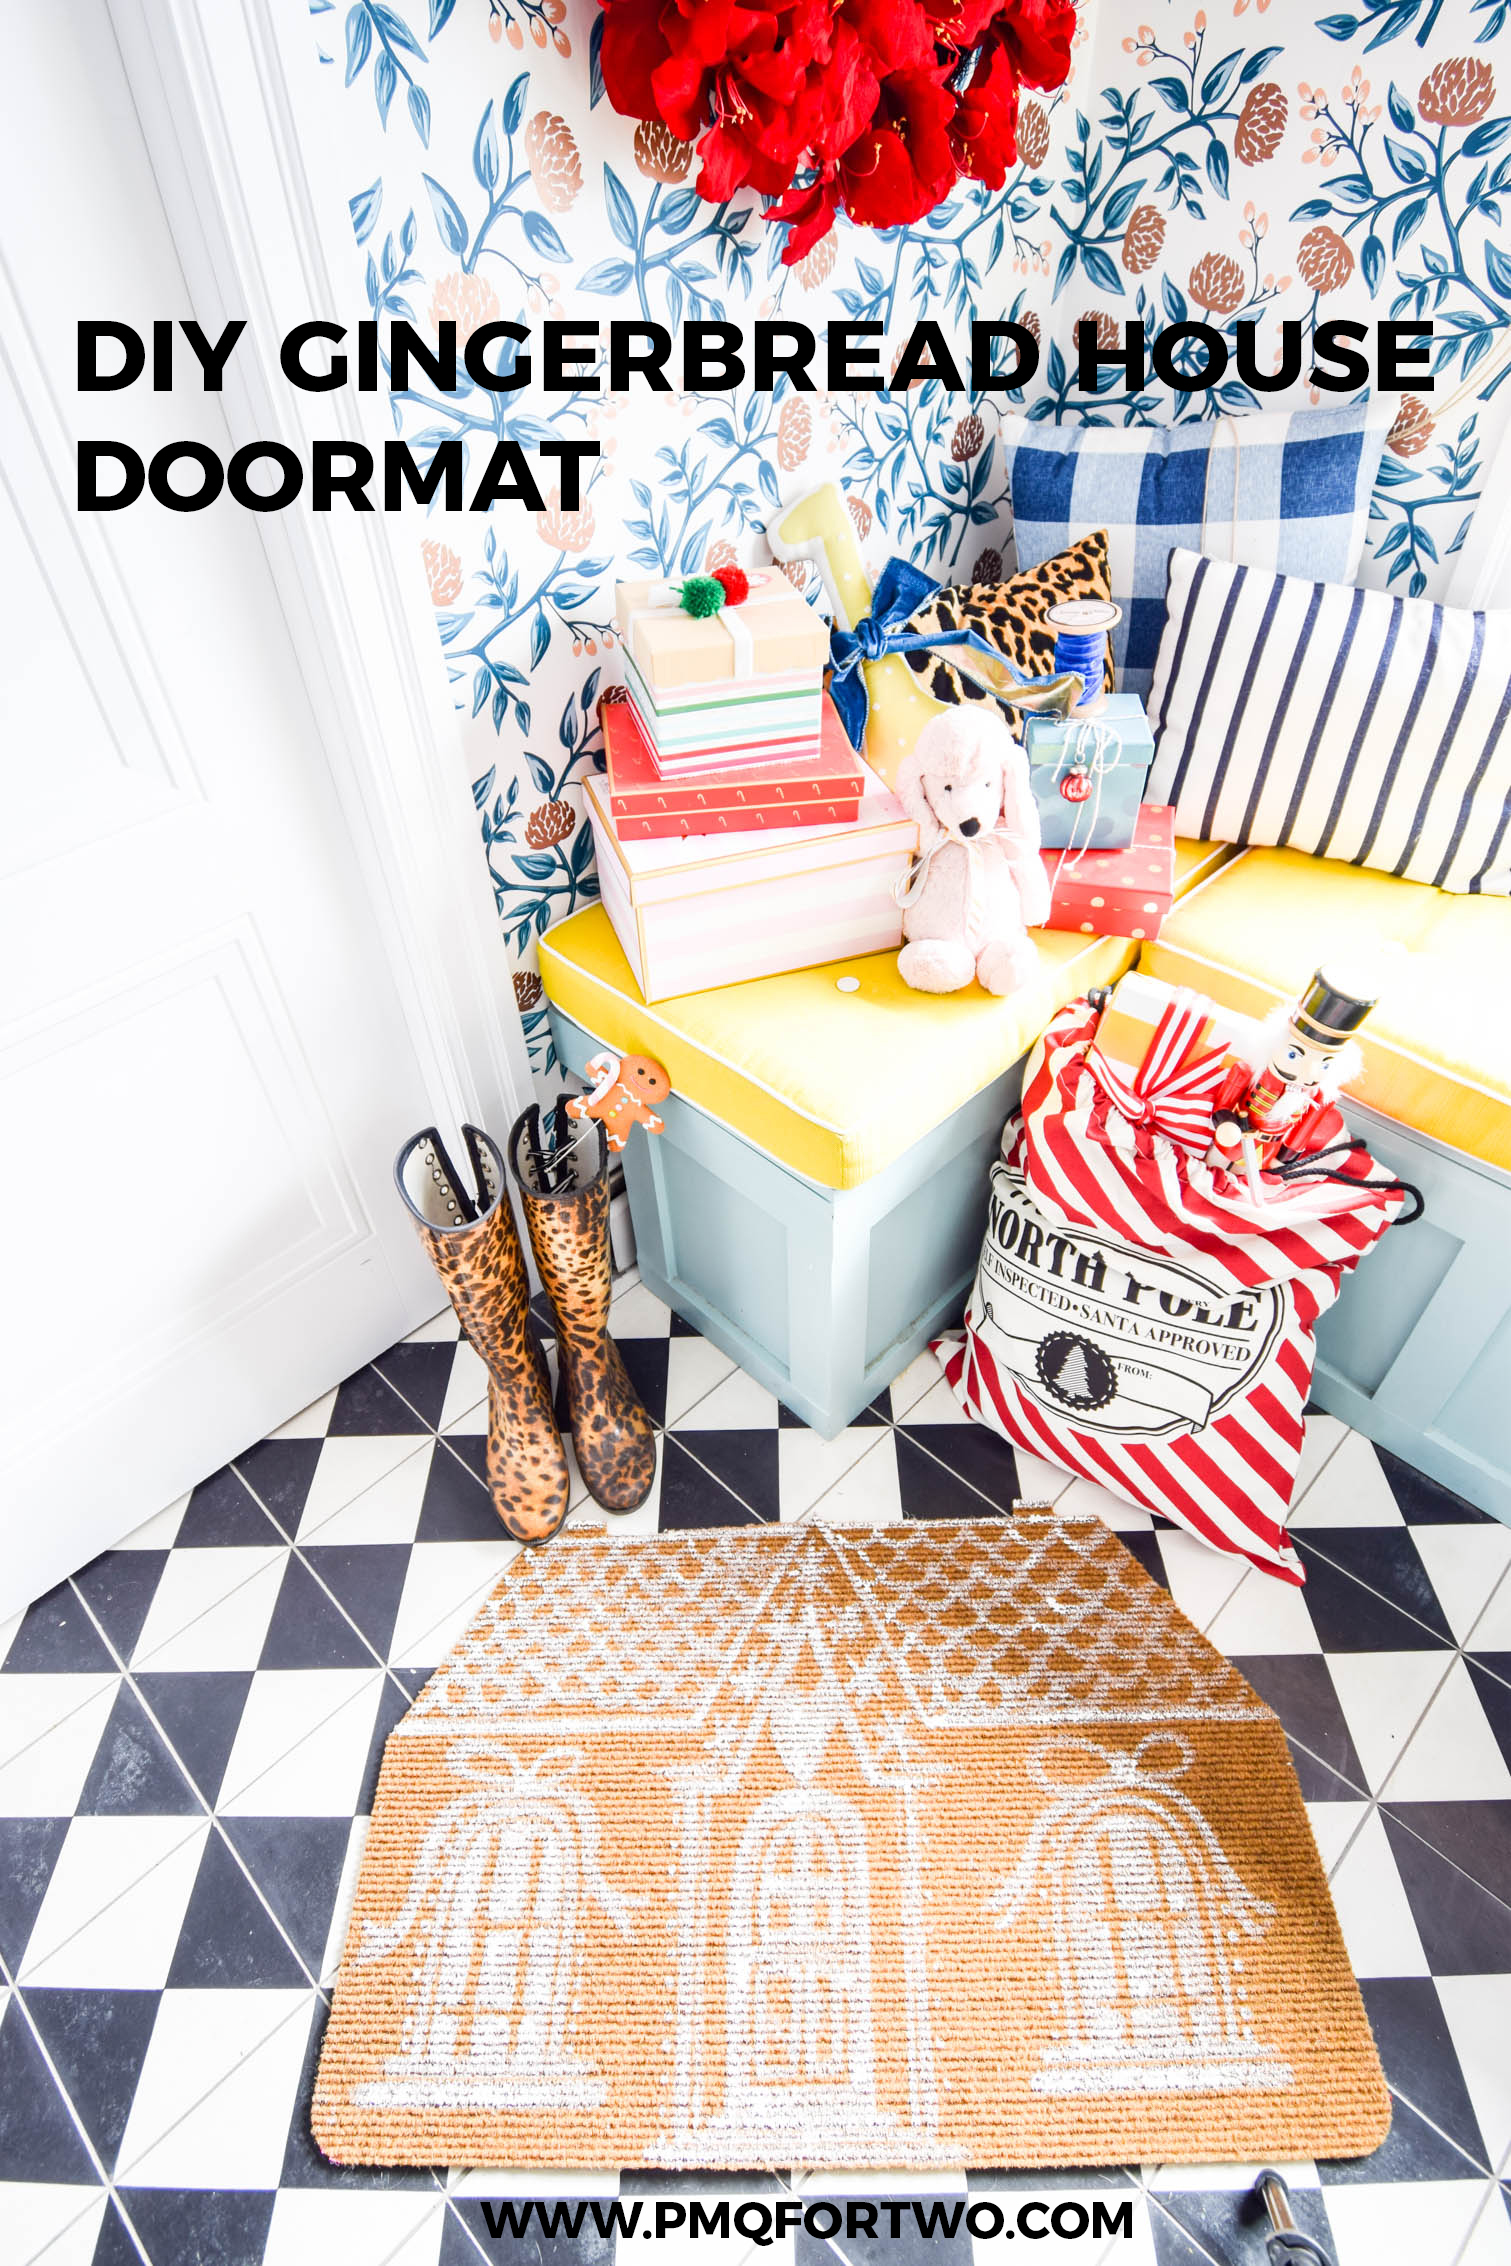 Have you seen the super cute Gingerbread doormat popping up around Instagram? I made my gingerbread house doormat using 3 simple elements and cost me 5$.